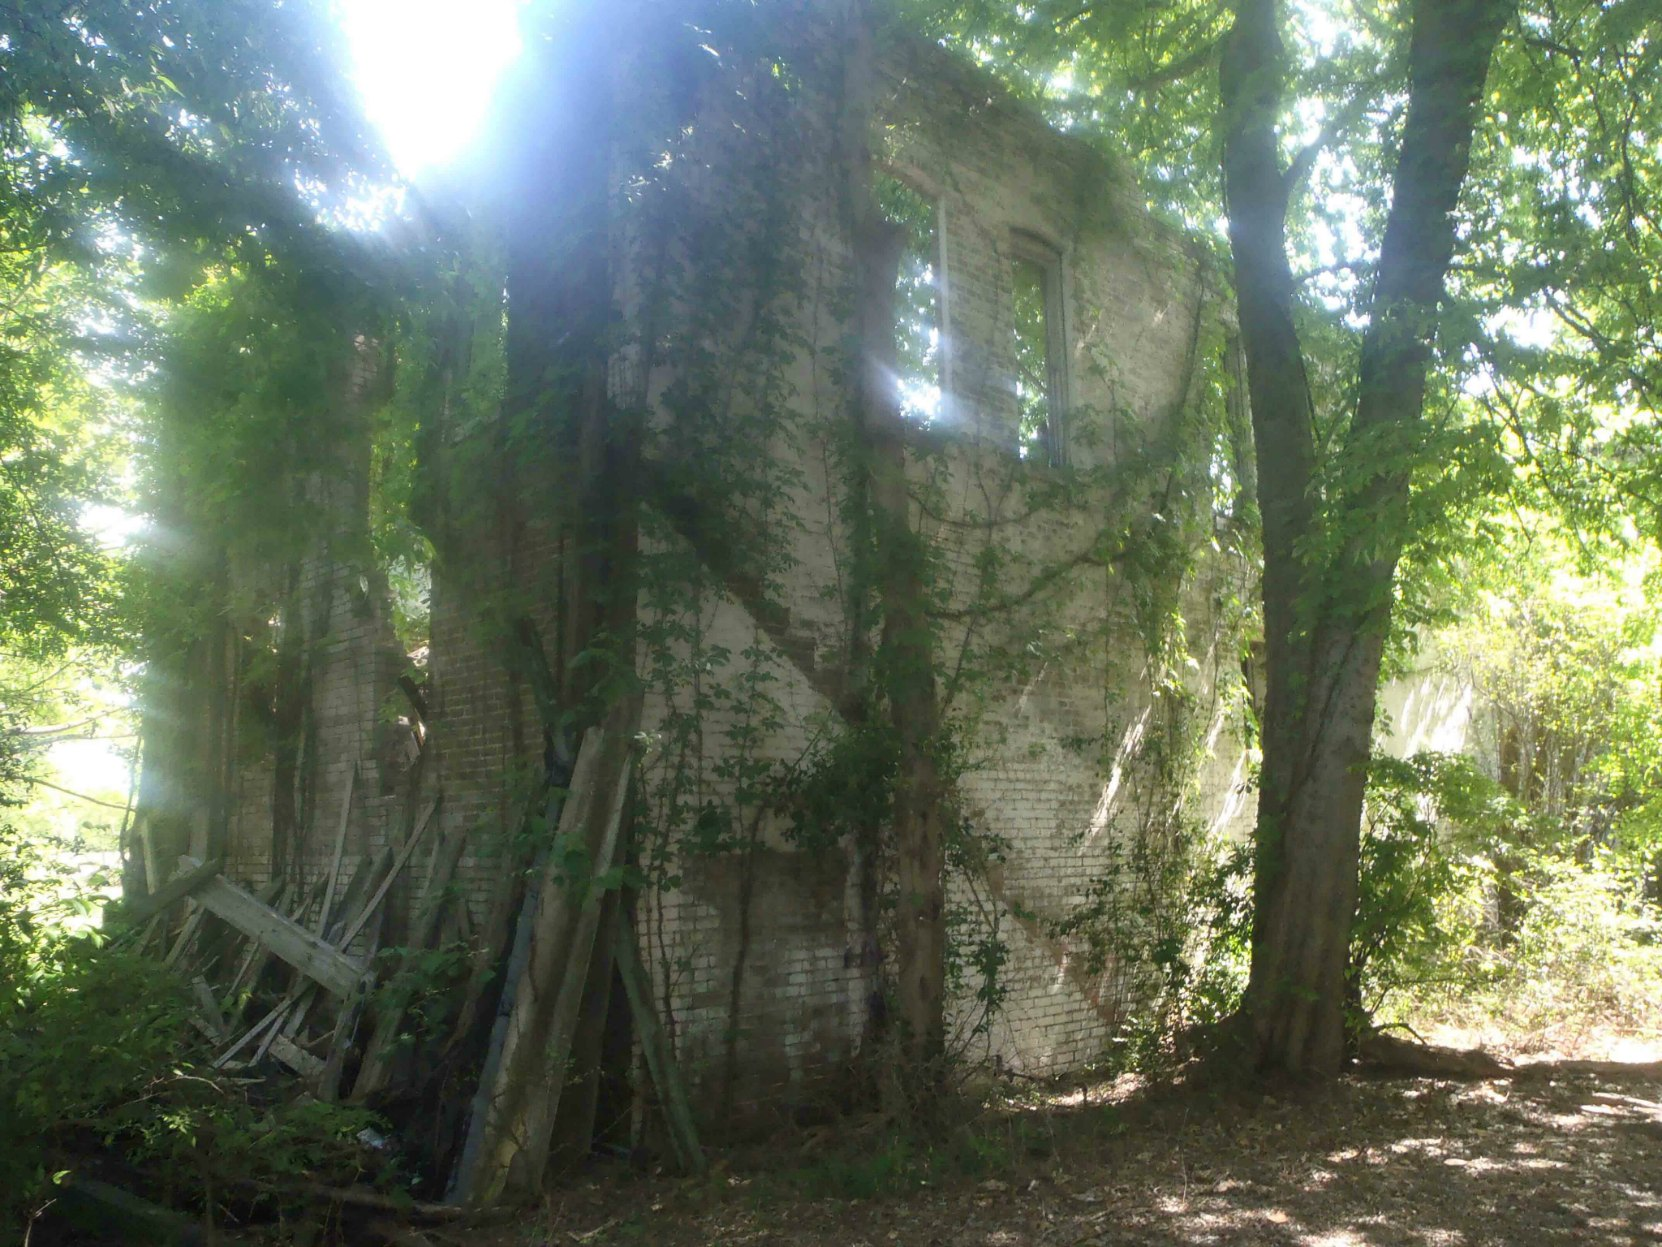 The ruins of Bryant's Grocery, Money, Leflore County, Mississippi. This was once the rear side of the building.